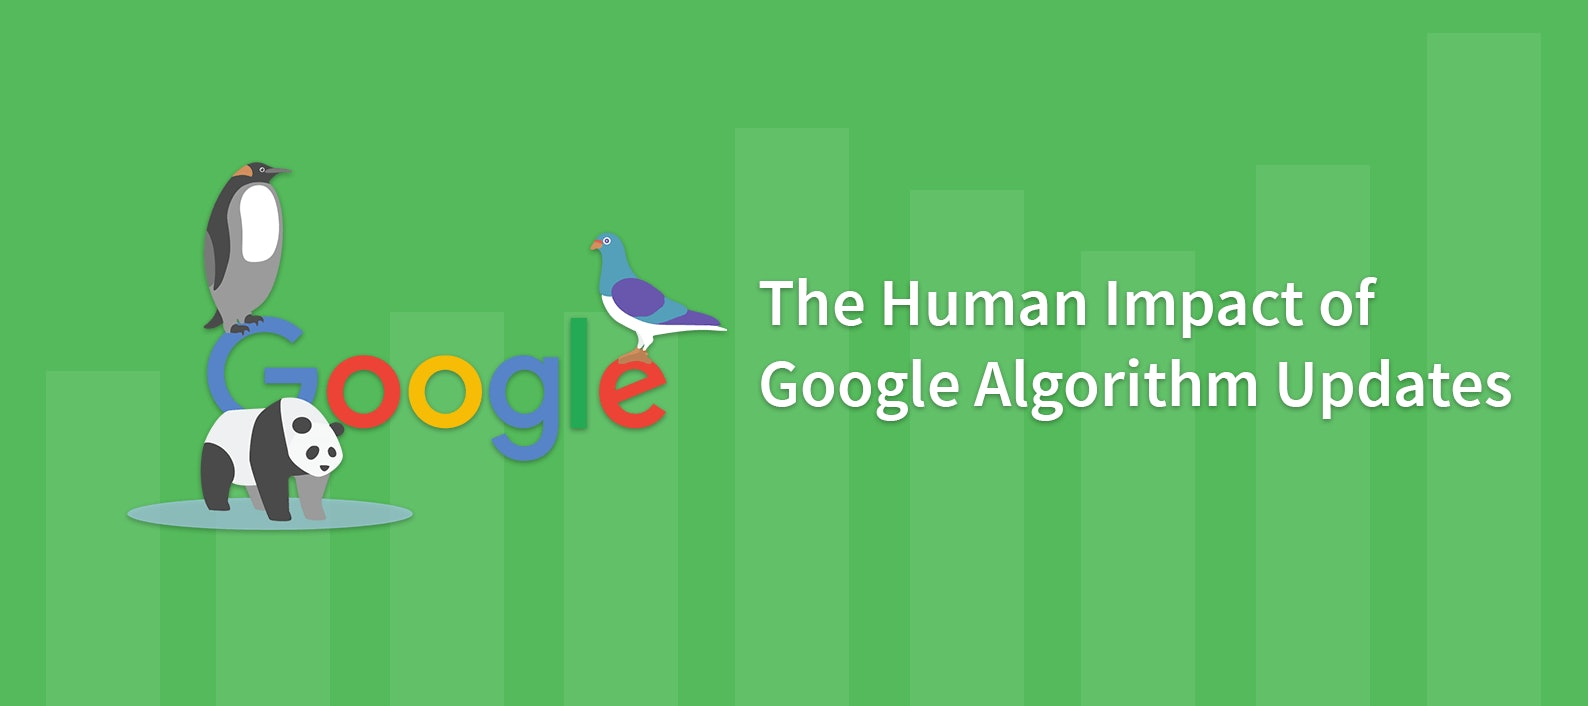 The Human Impact of Google Algorithm Updates